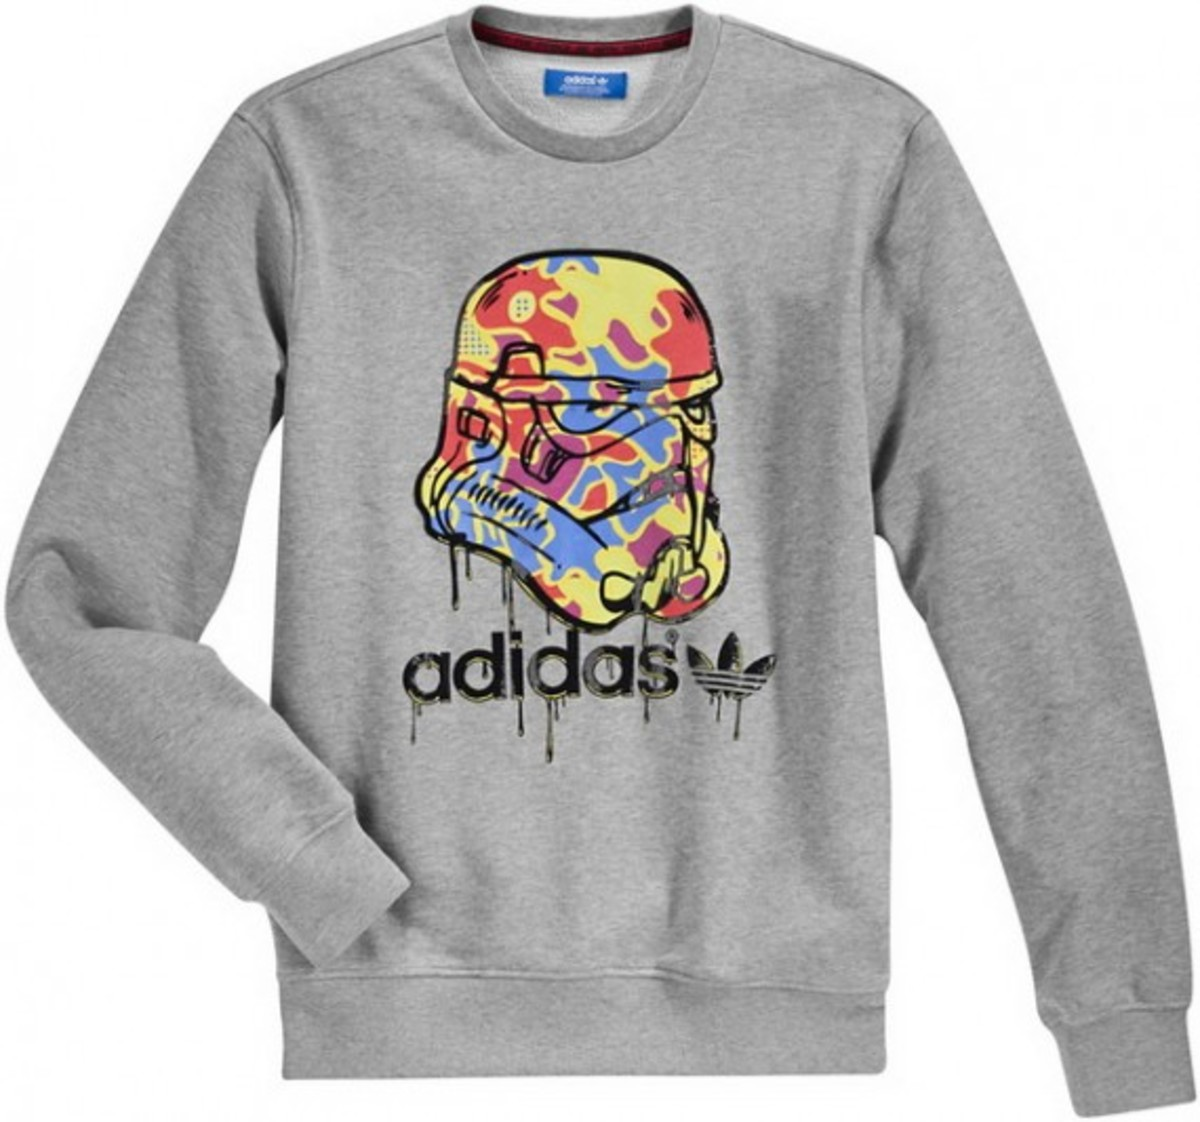 star-wars-adidas-originals-2011-apparel-16